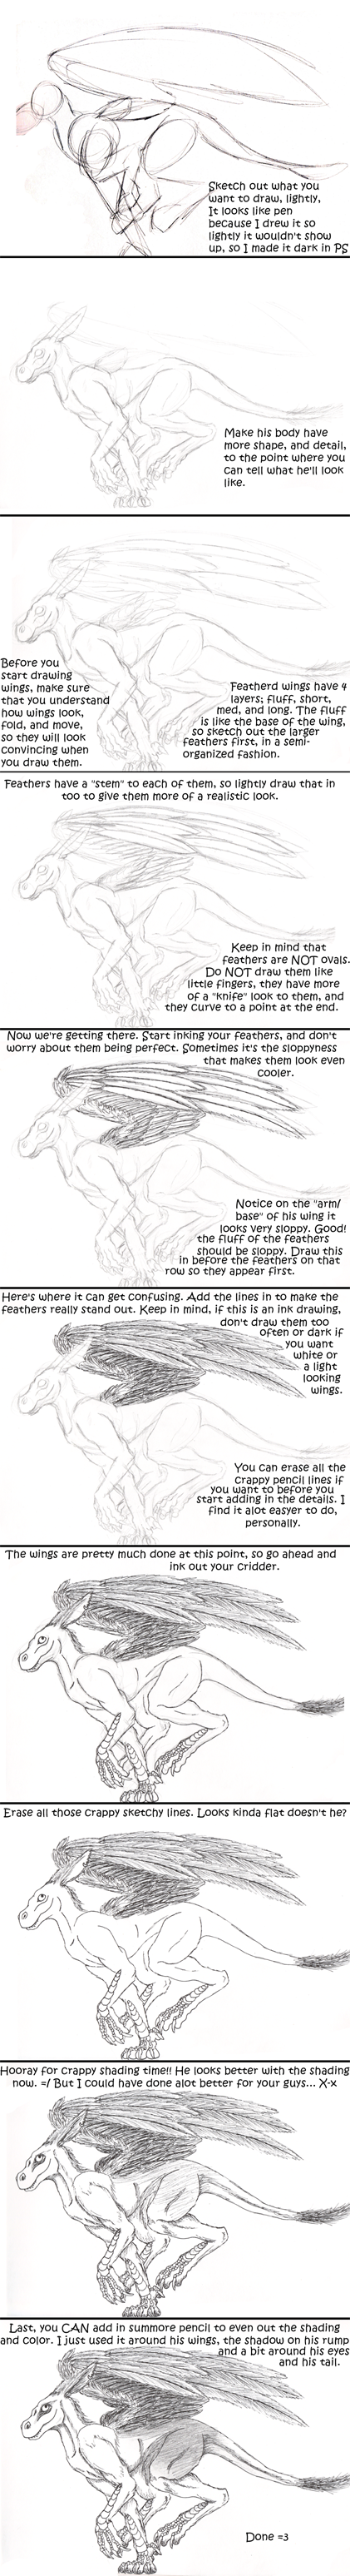 Ink Wing And Shading Tutorial By Kiwi Fox3 On Deviantart